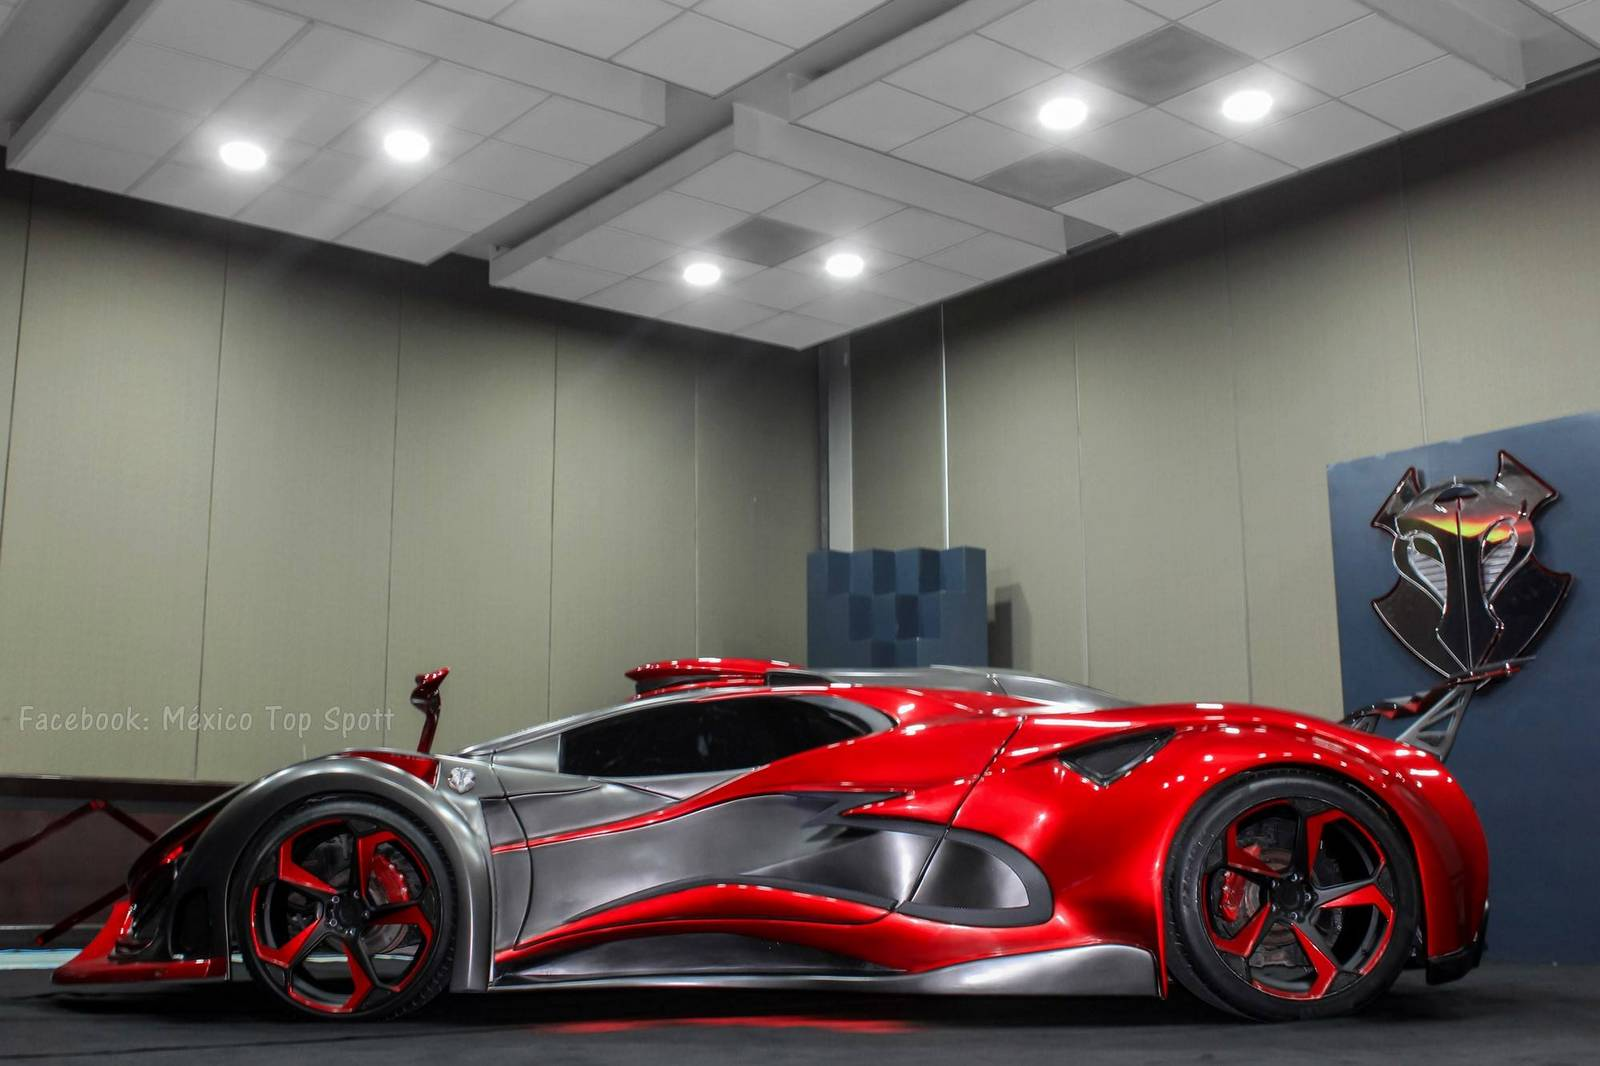 Fast And Furious 5 Cars Wallpapers Hd Mexico S First Hypercar The Inferno Exotic Car Isn T